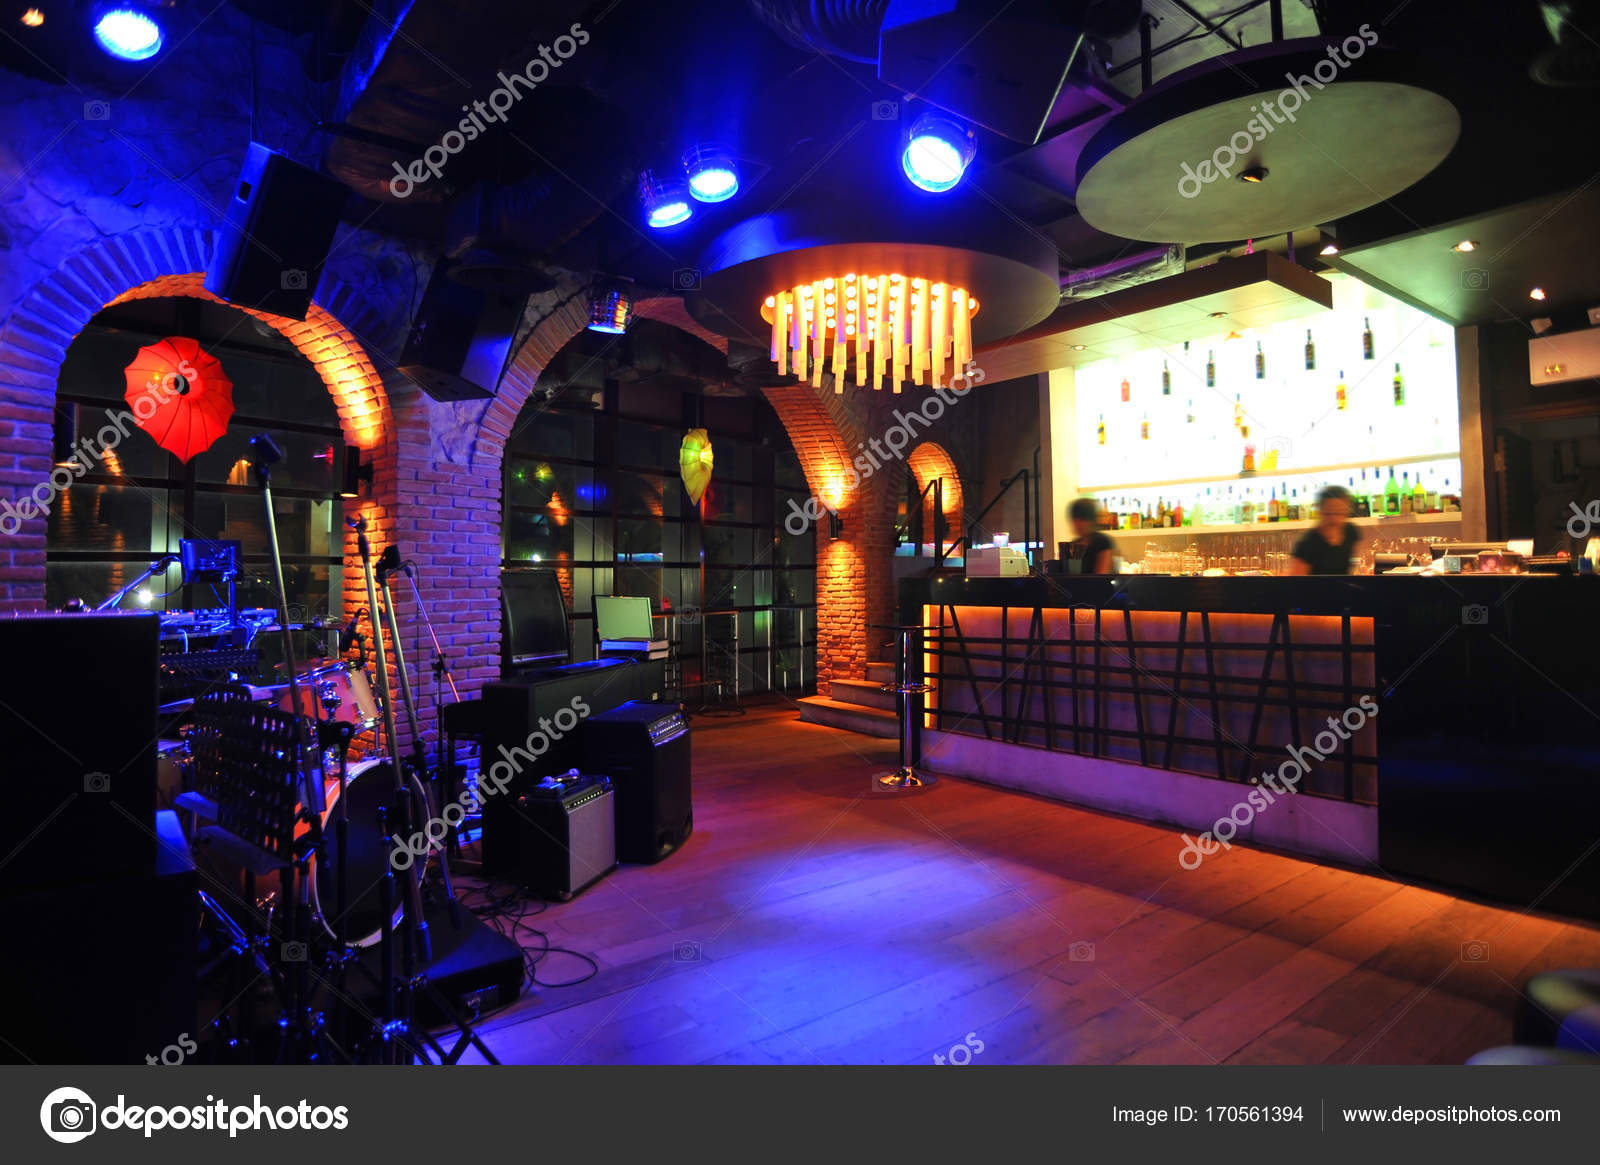 Loft Bar Dekoration Stil — Stockfoto © 7Crafts #170561394